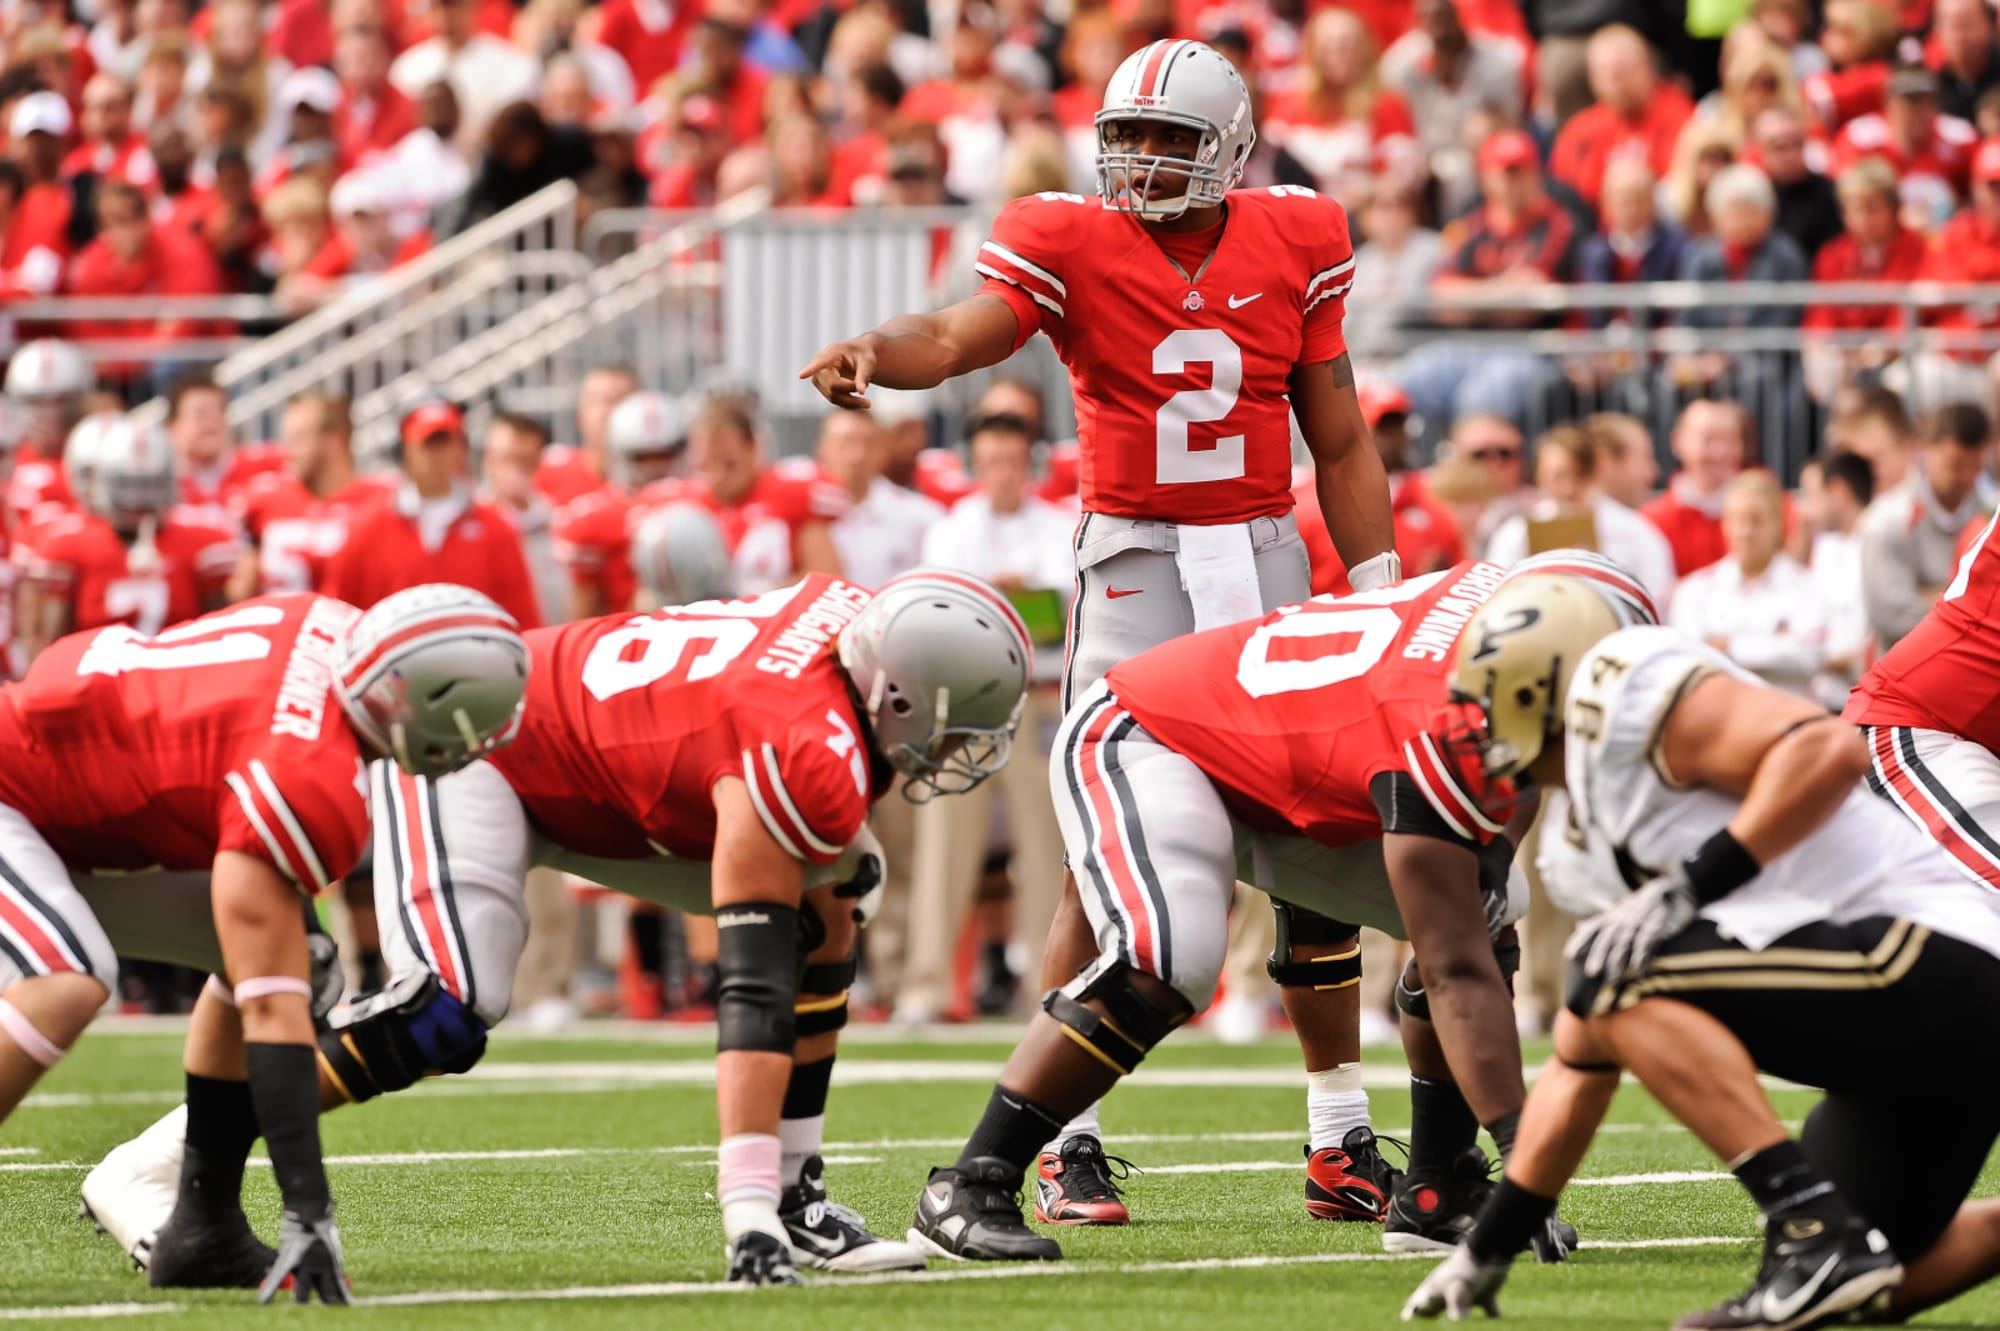 Ohio State Football: Top Five rated Buckeye recruits - Page 4